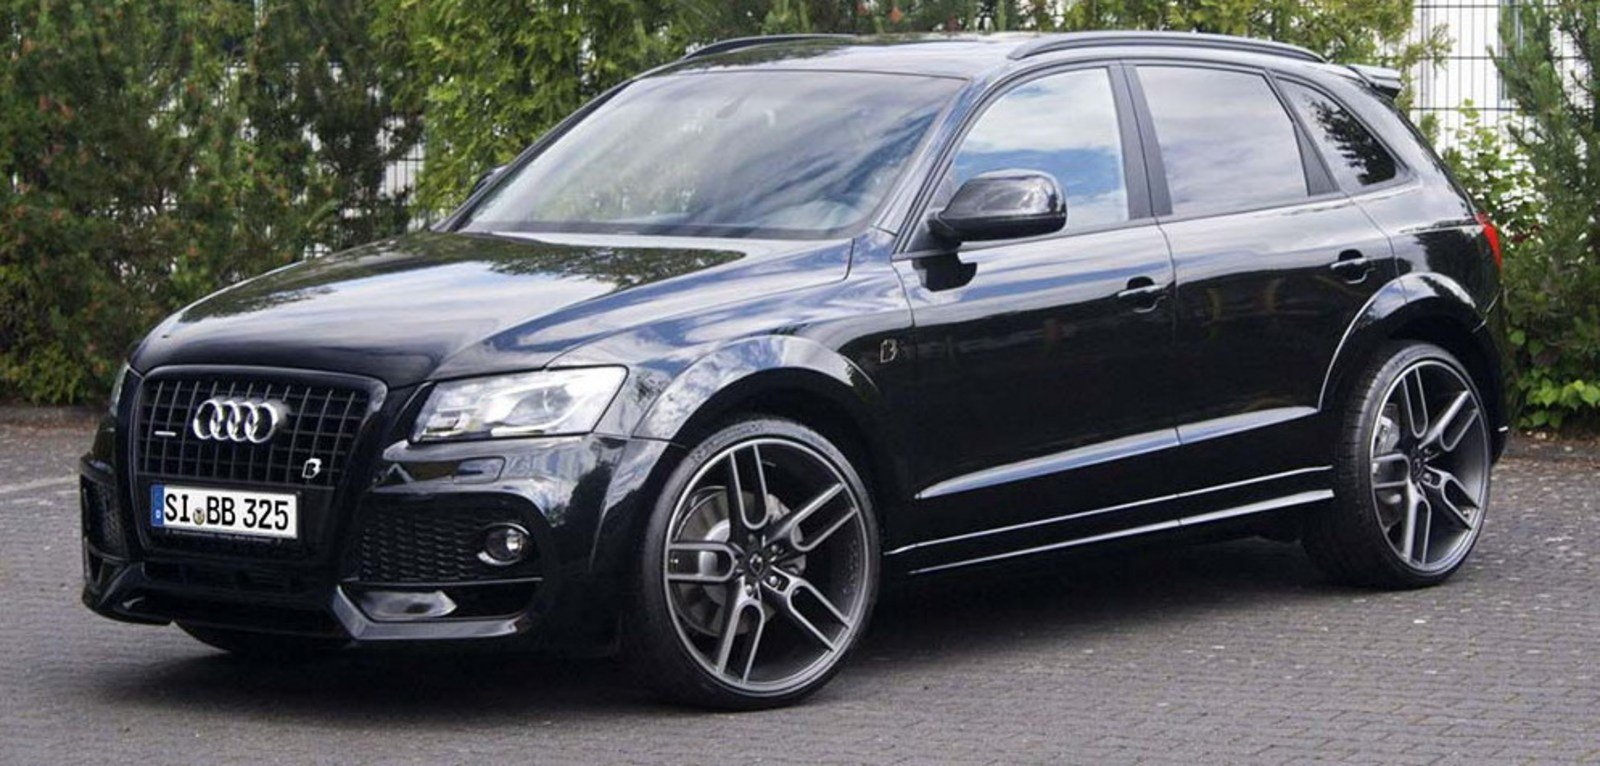 b b tunes the audi sq5 tdi to nearly 400 horsepower news top speed. Black Bedroom Furniture Sets. Home Design Ideas